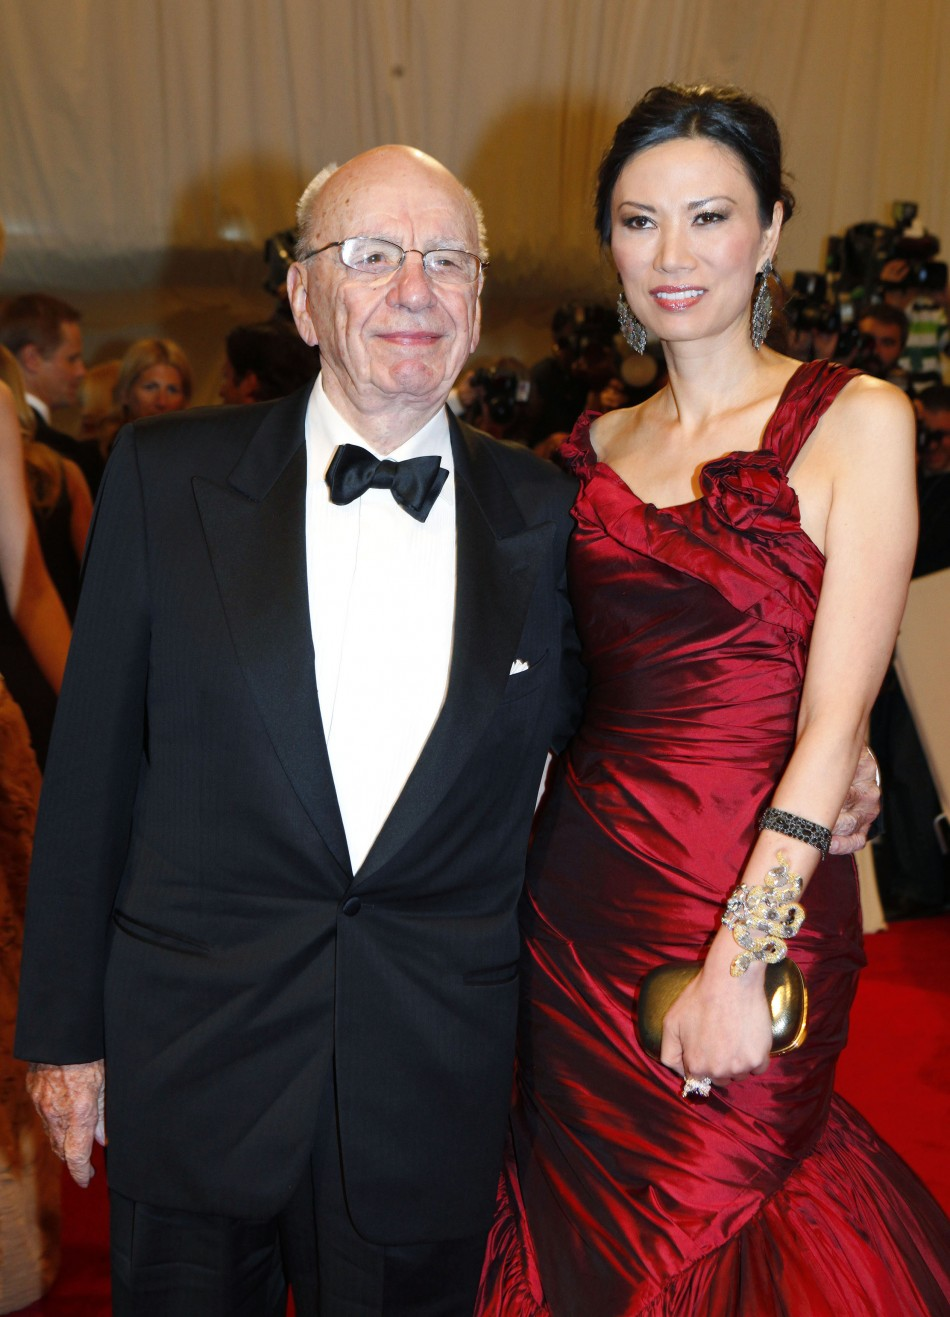 Rupert Murdoch and wife Wendi Deng Murdoch pose on the red carpet at the Metropolitan Museum of Art Costume Institute Benefit celebrating the opening of Alexander McQueen Savage Beauty in New York